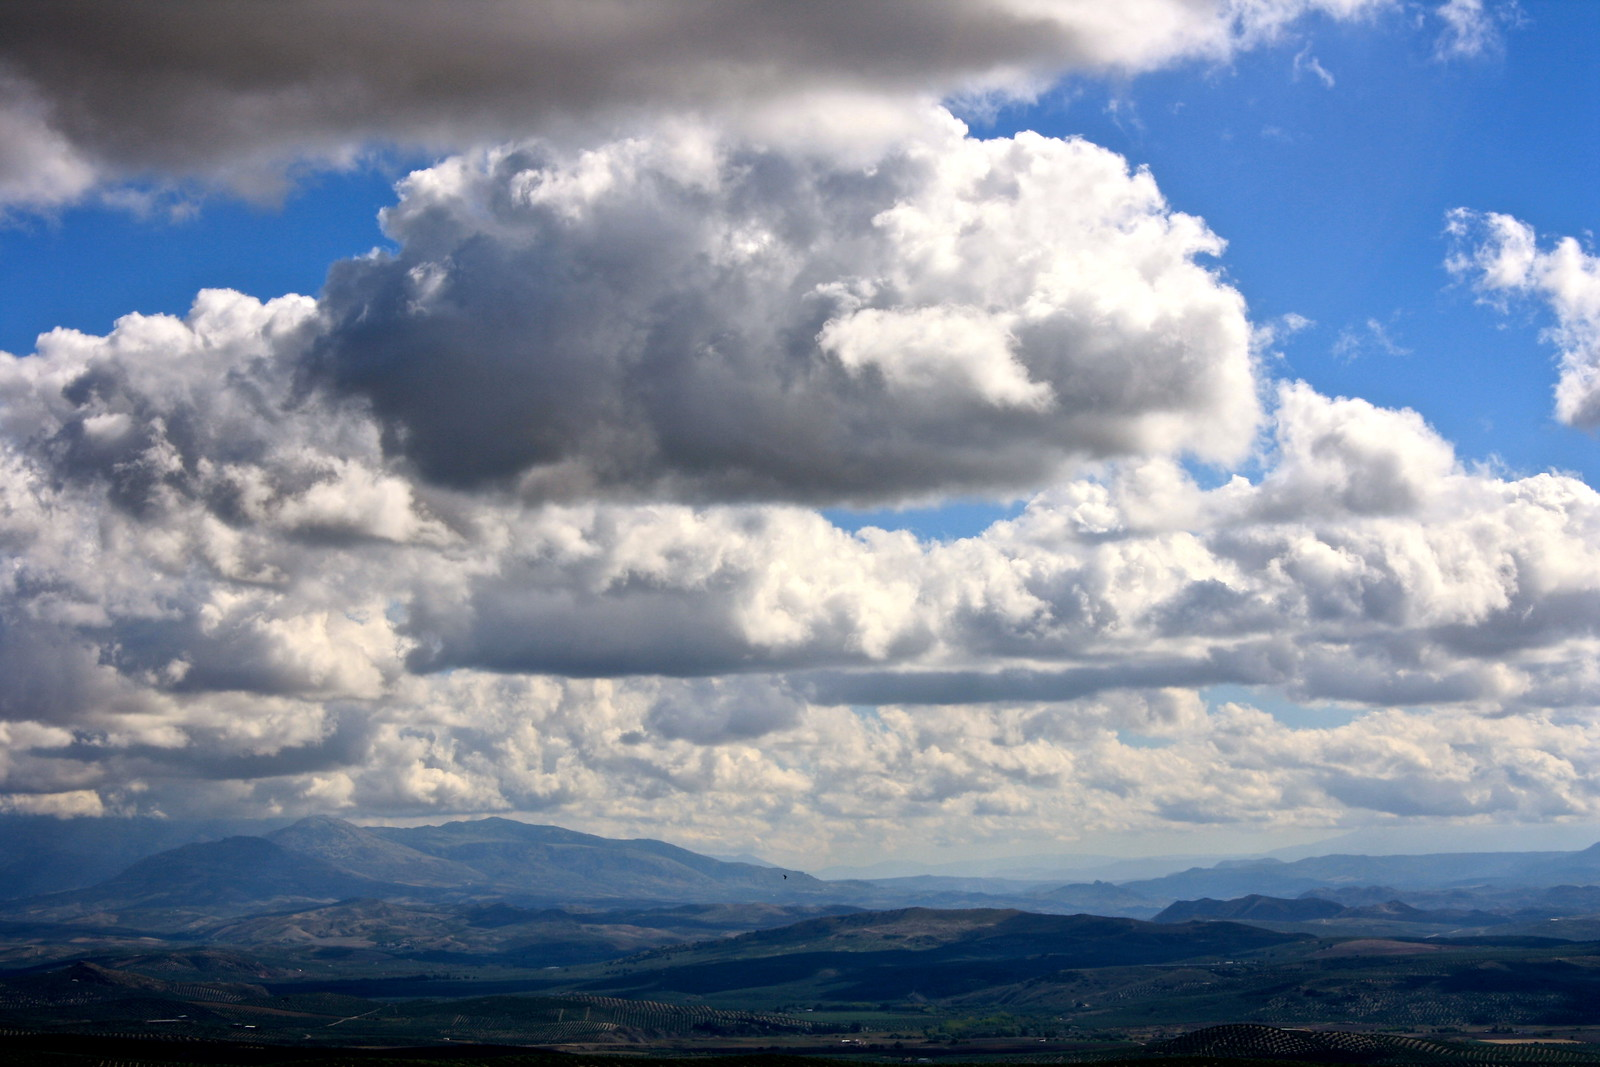 Clouds over olive groves in Jaén province, Spain